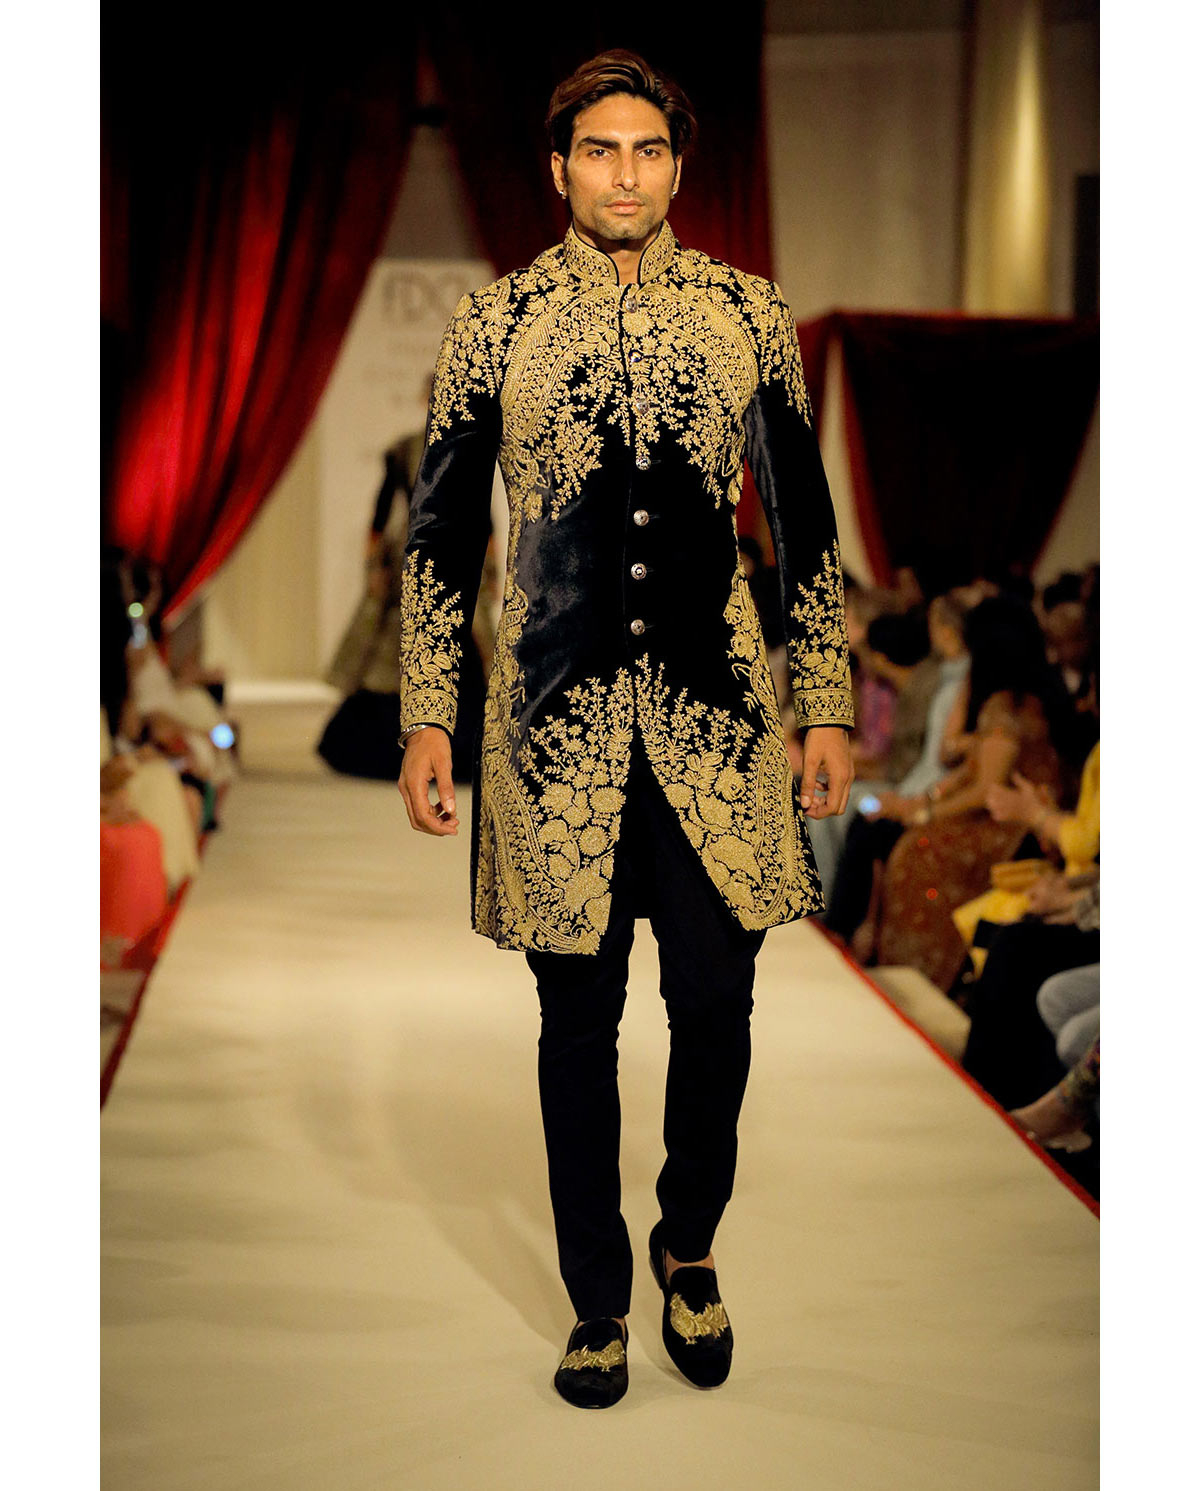 Famous Fashion Designers In India 2018: Top Indian Sherwani Designers Best Collection 2019 for Weddings rh:galstyles.com,Design